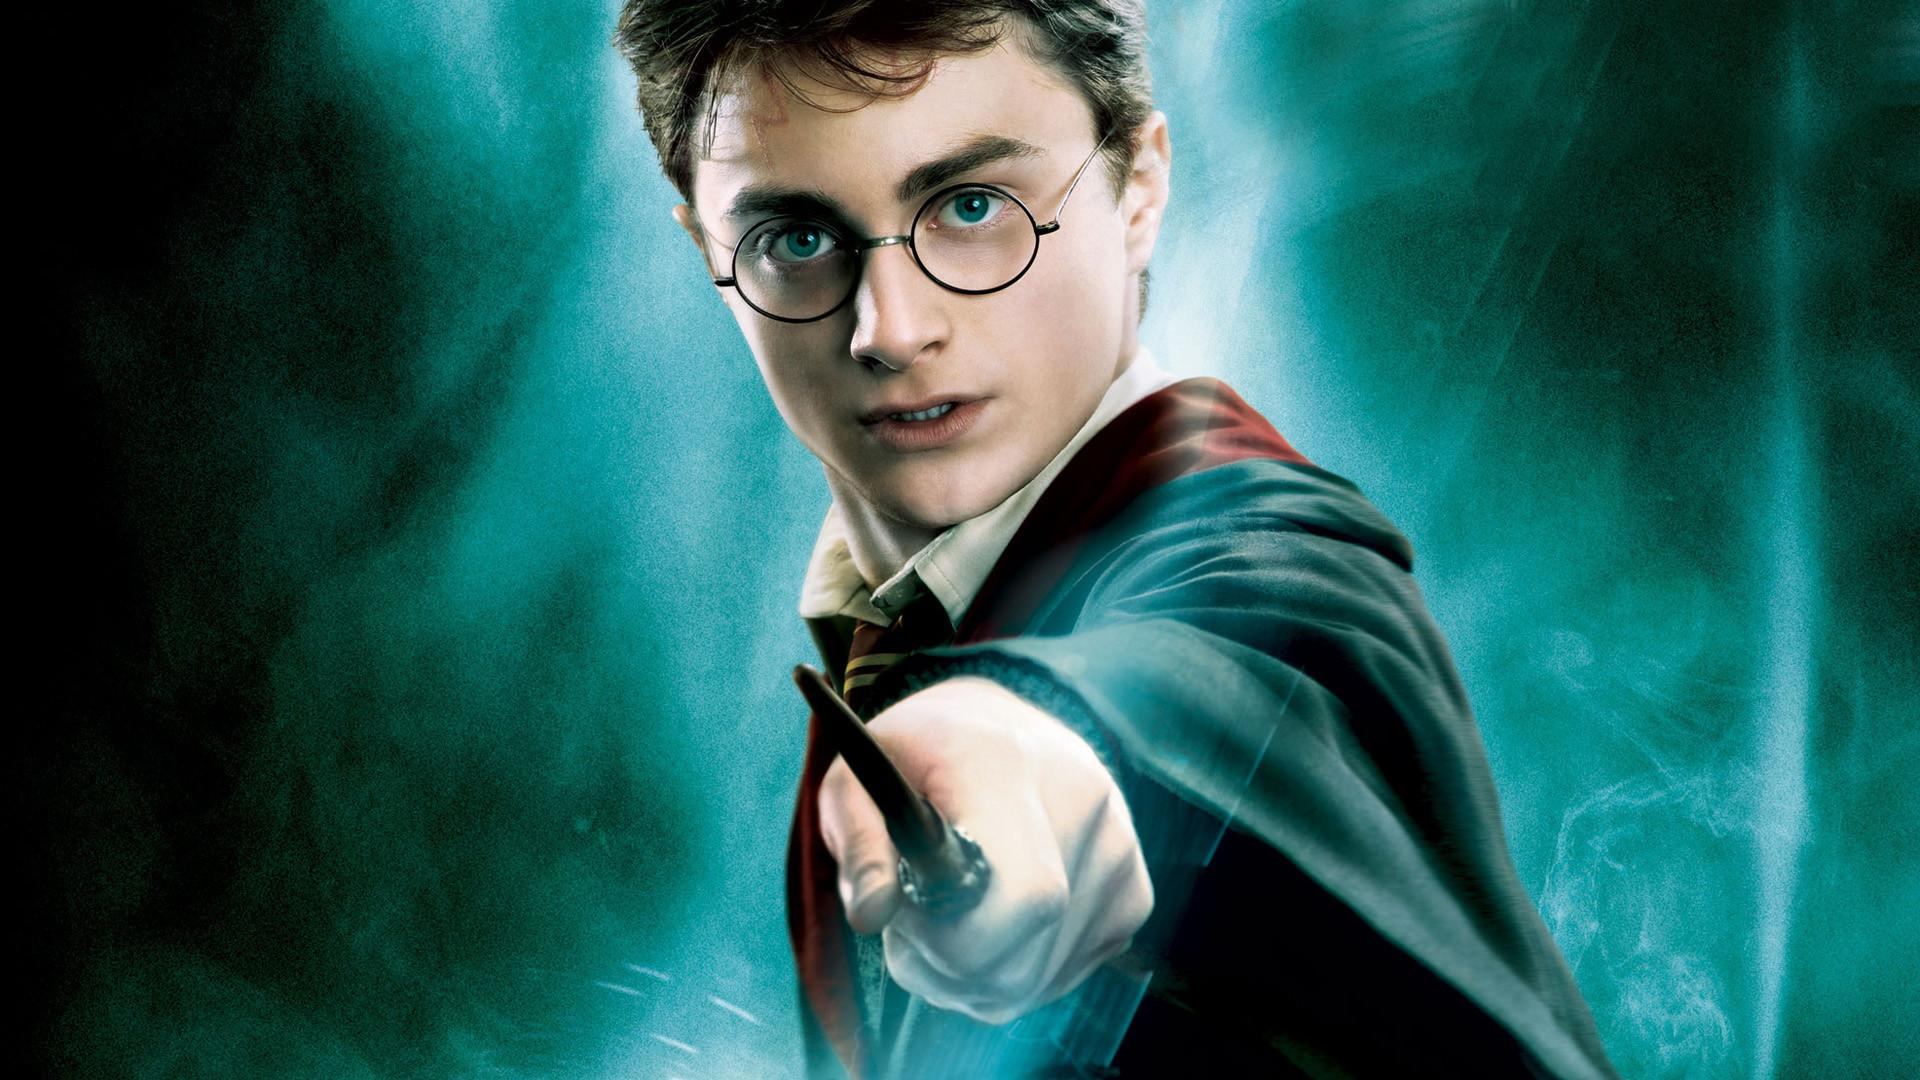 Why Isn't This a (Good) Game Yet? Harry Potter